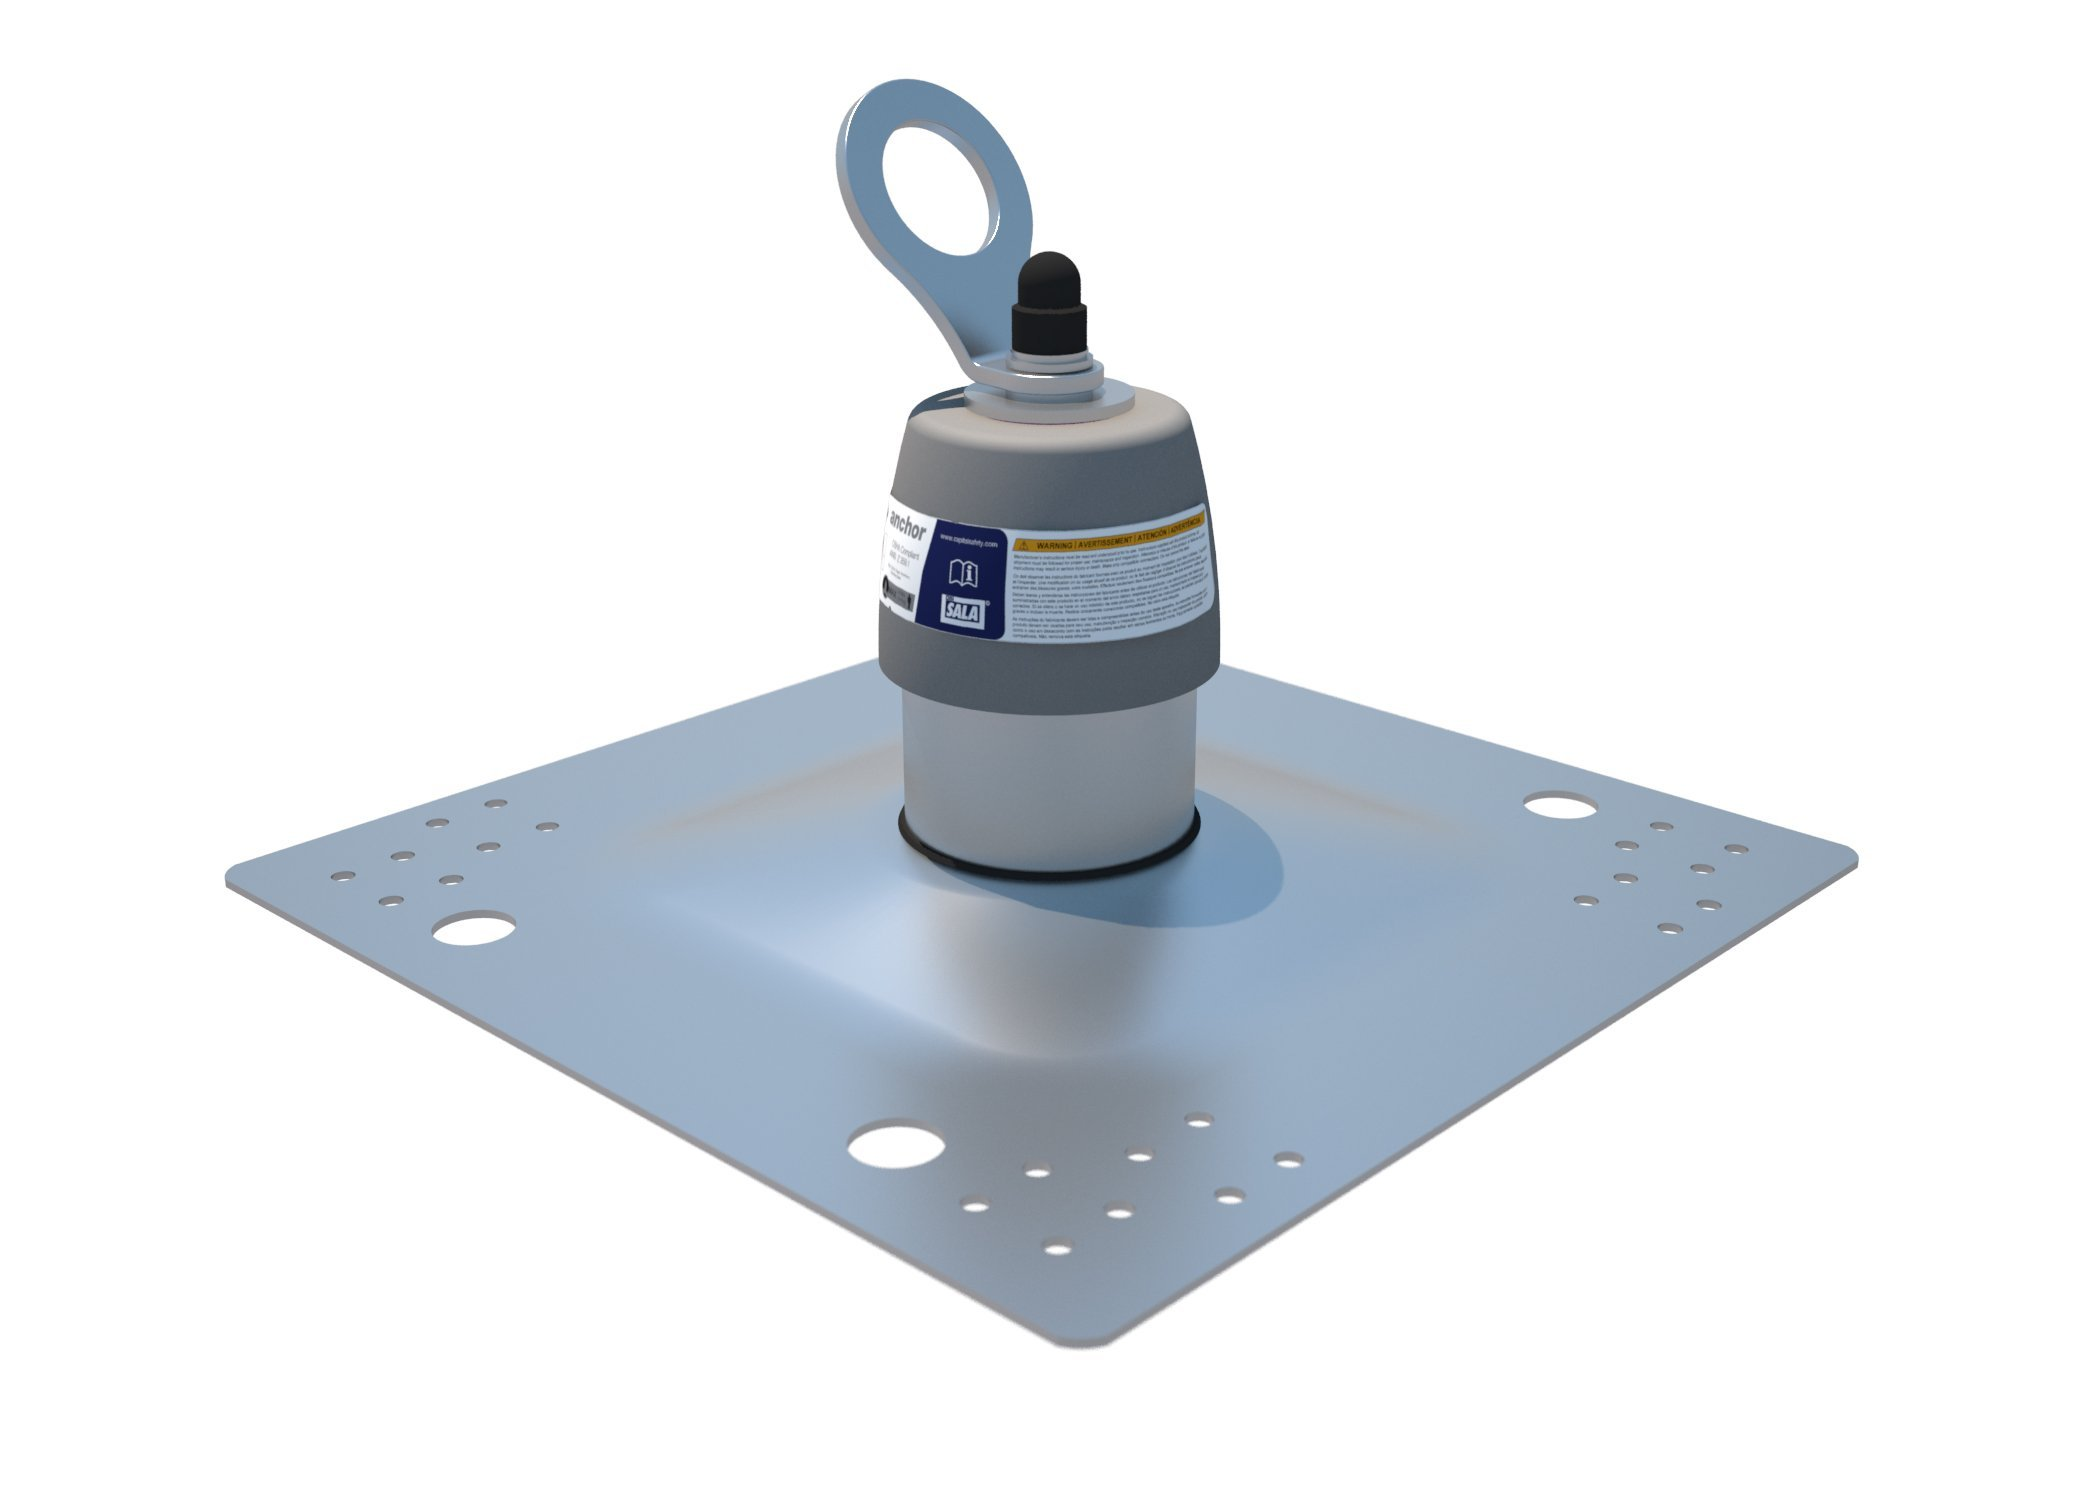 3M DBI-SALA 2100139 Roof Top Anchor for Standard Membrane and Built-Up Roofs with Weather Proofing Shroud, Silver